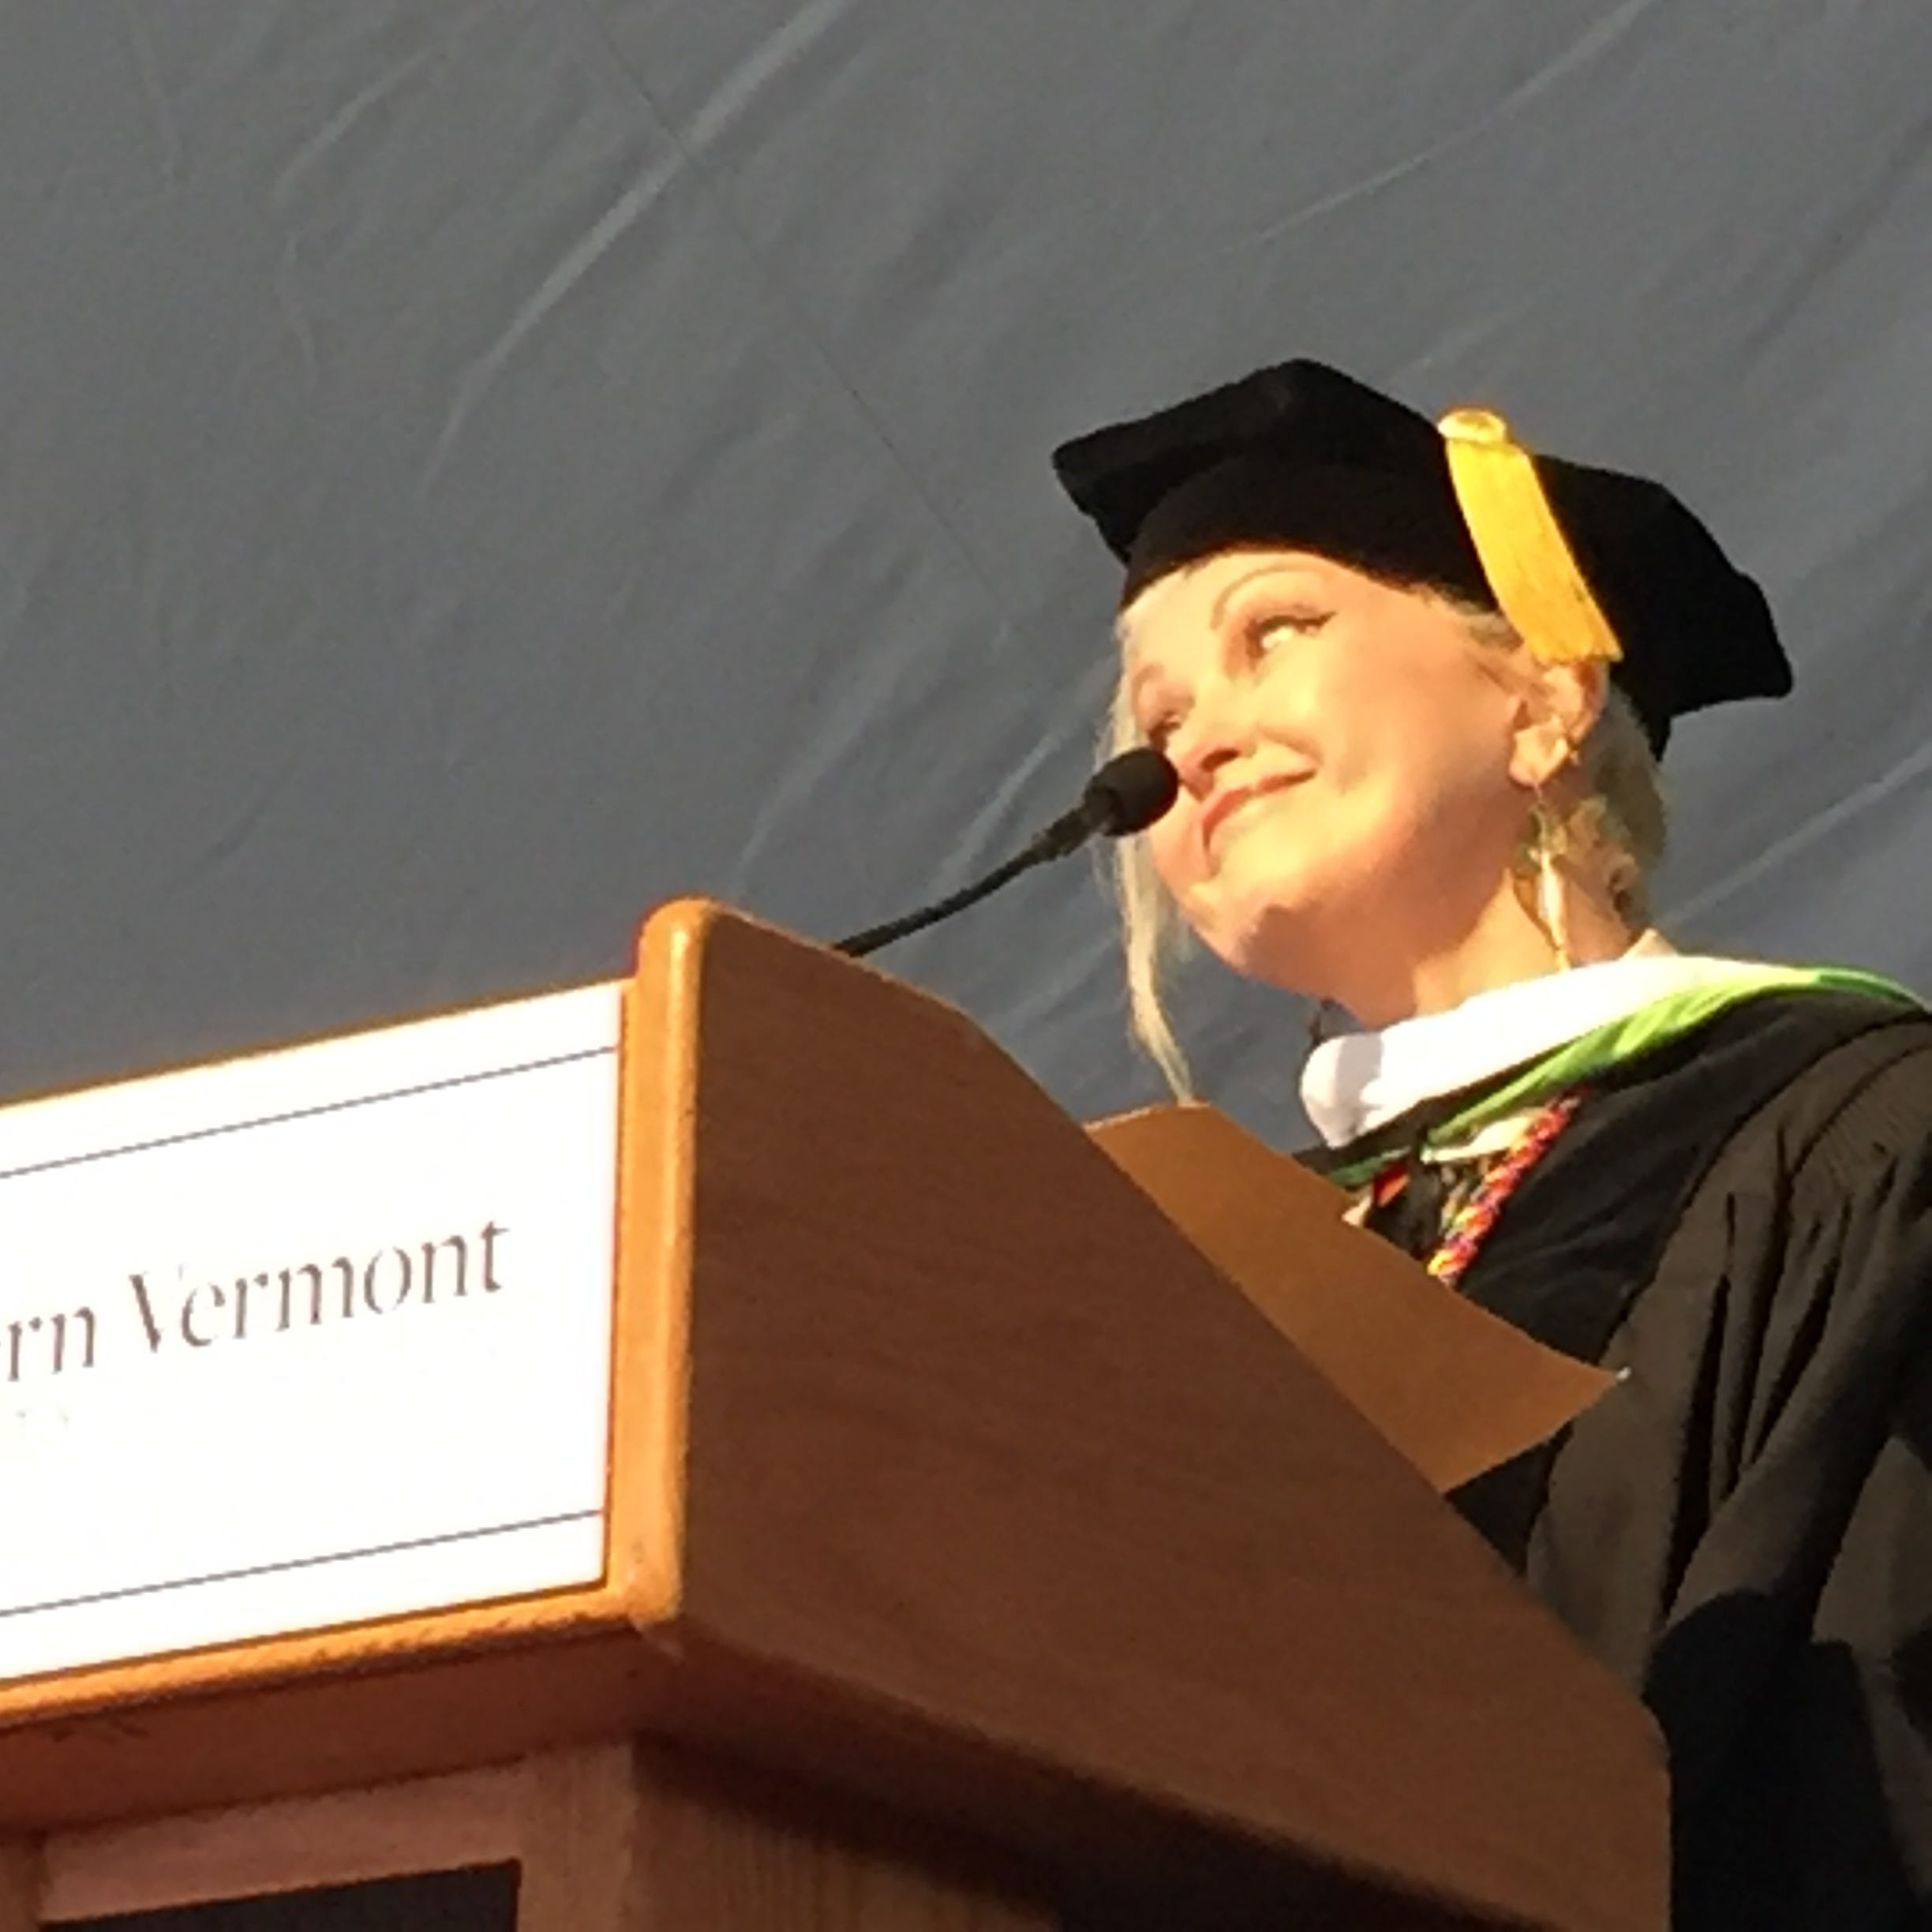 Cyndi Lauper went to college in Johnson. Saturday, she gave the commencement address